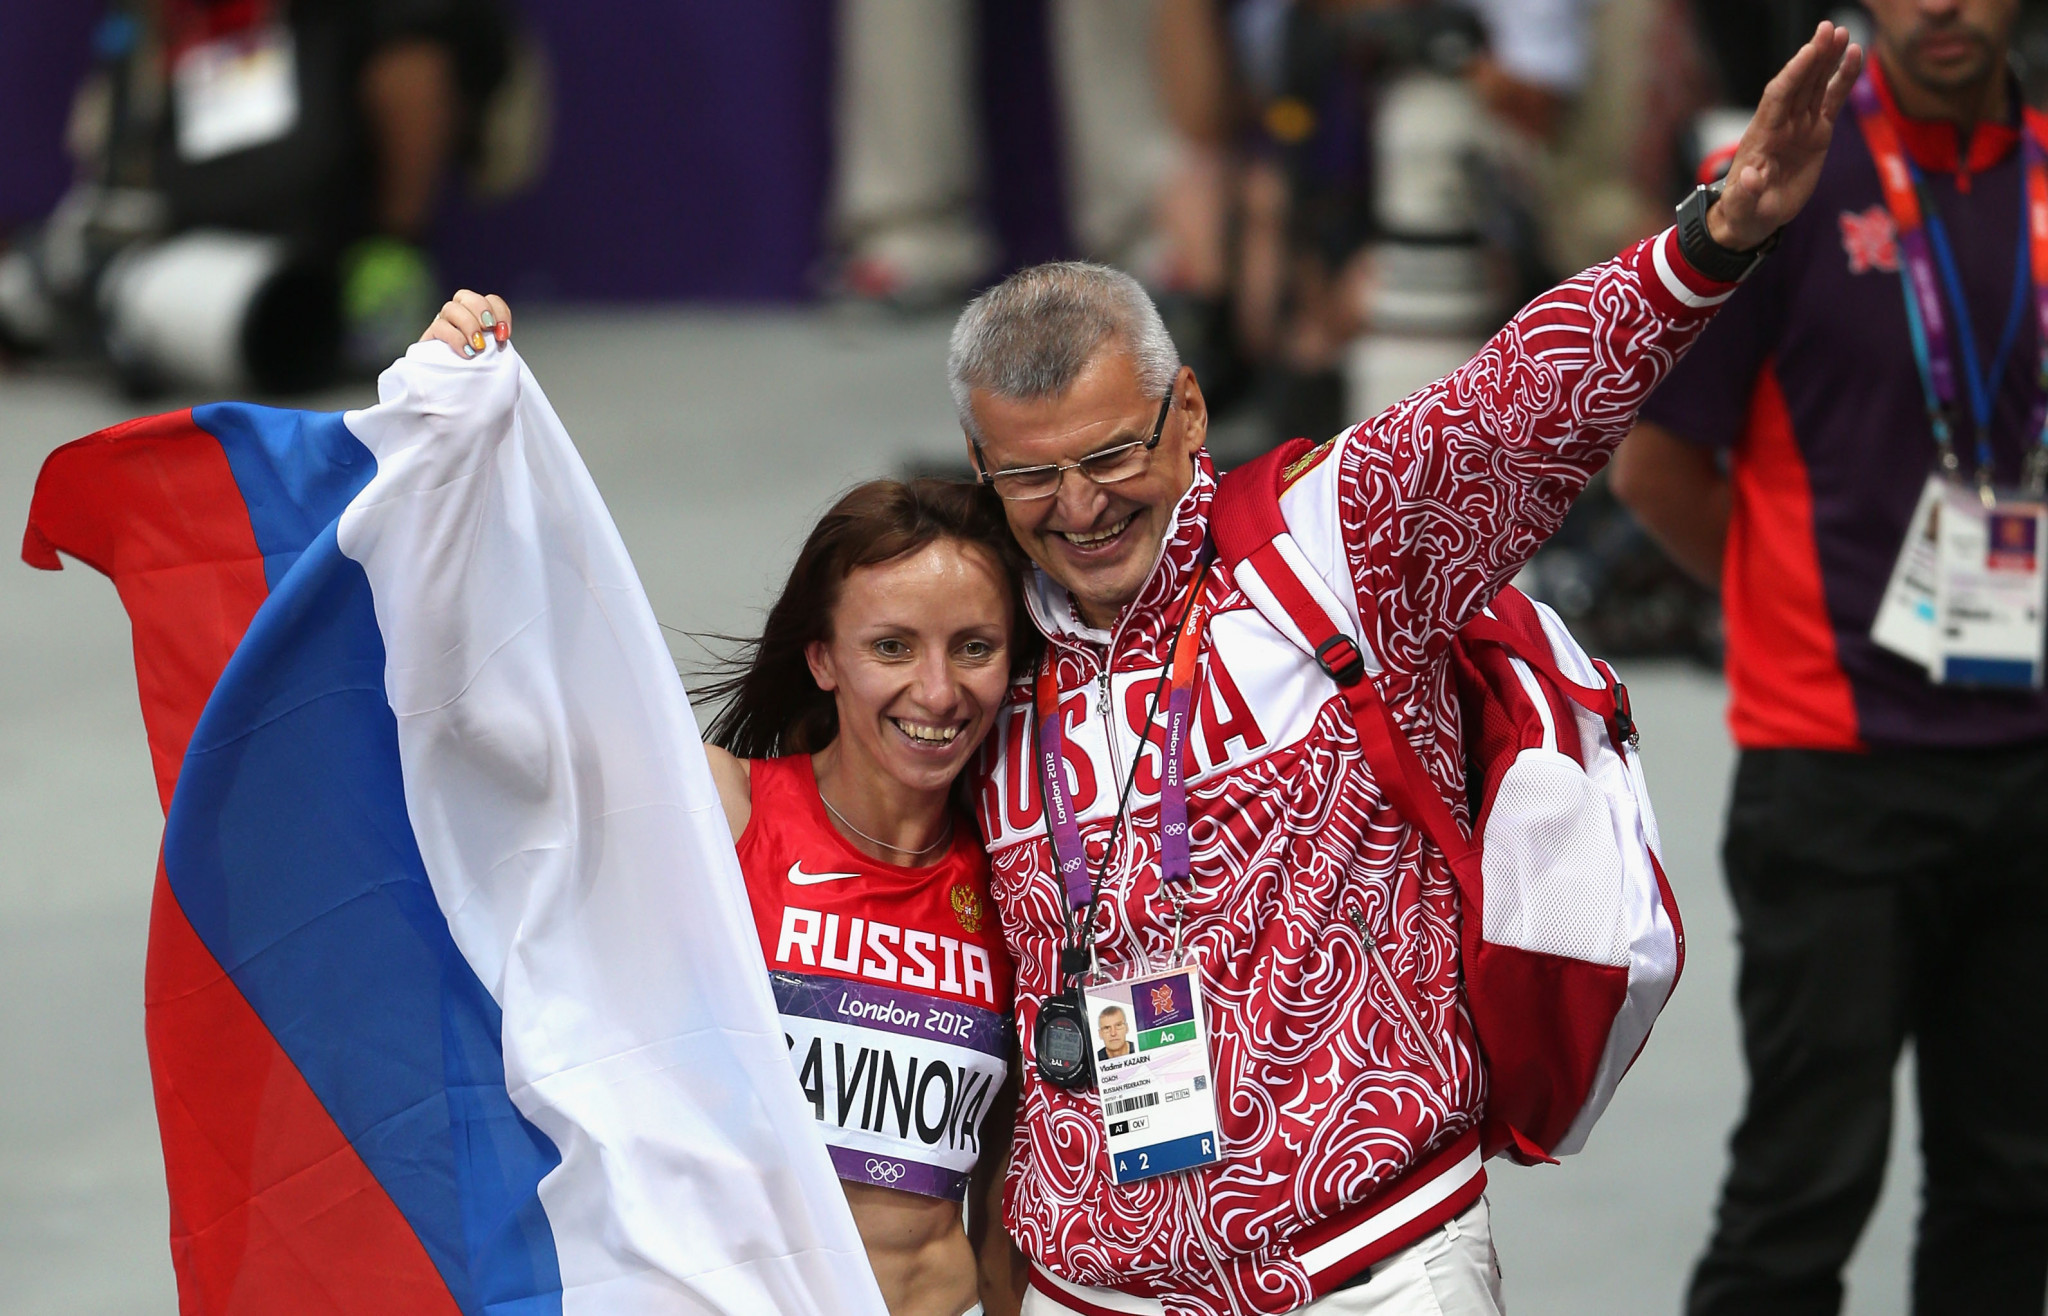 Vladimir Kazarin, pictured with Maria Savinova at London 2012 after she won the 800 metres - a title she was subsequently stripped of for doping - was banned from athletics for life in 2017 ©Getty Images